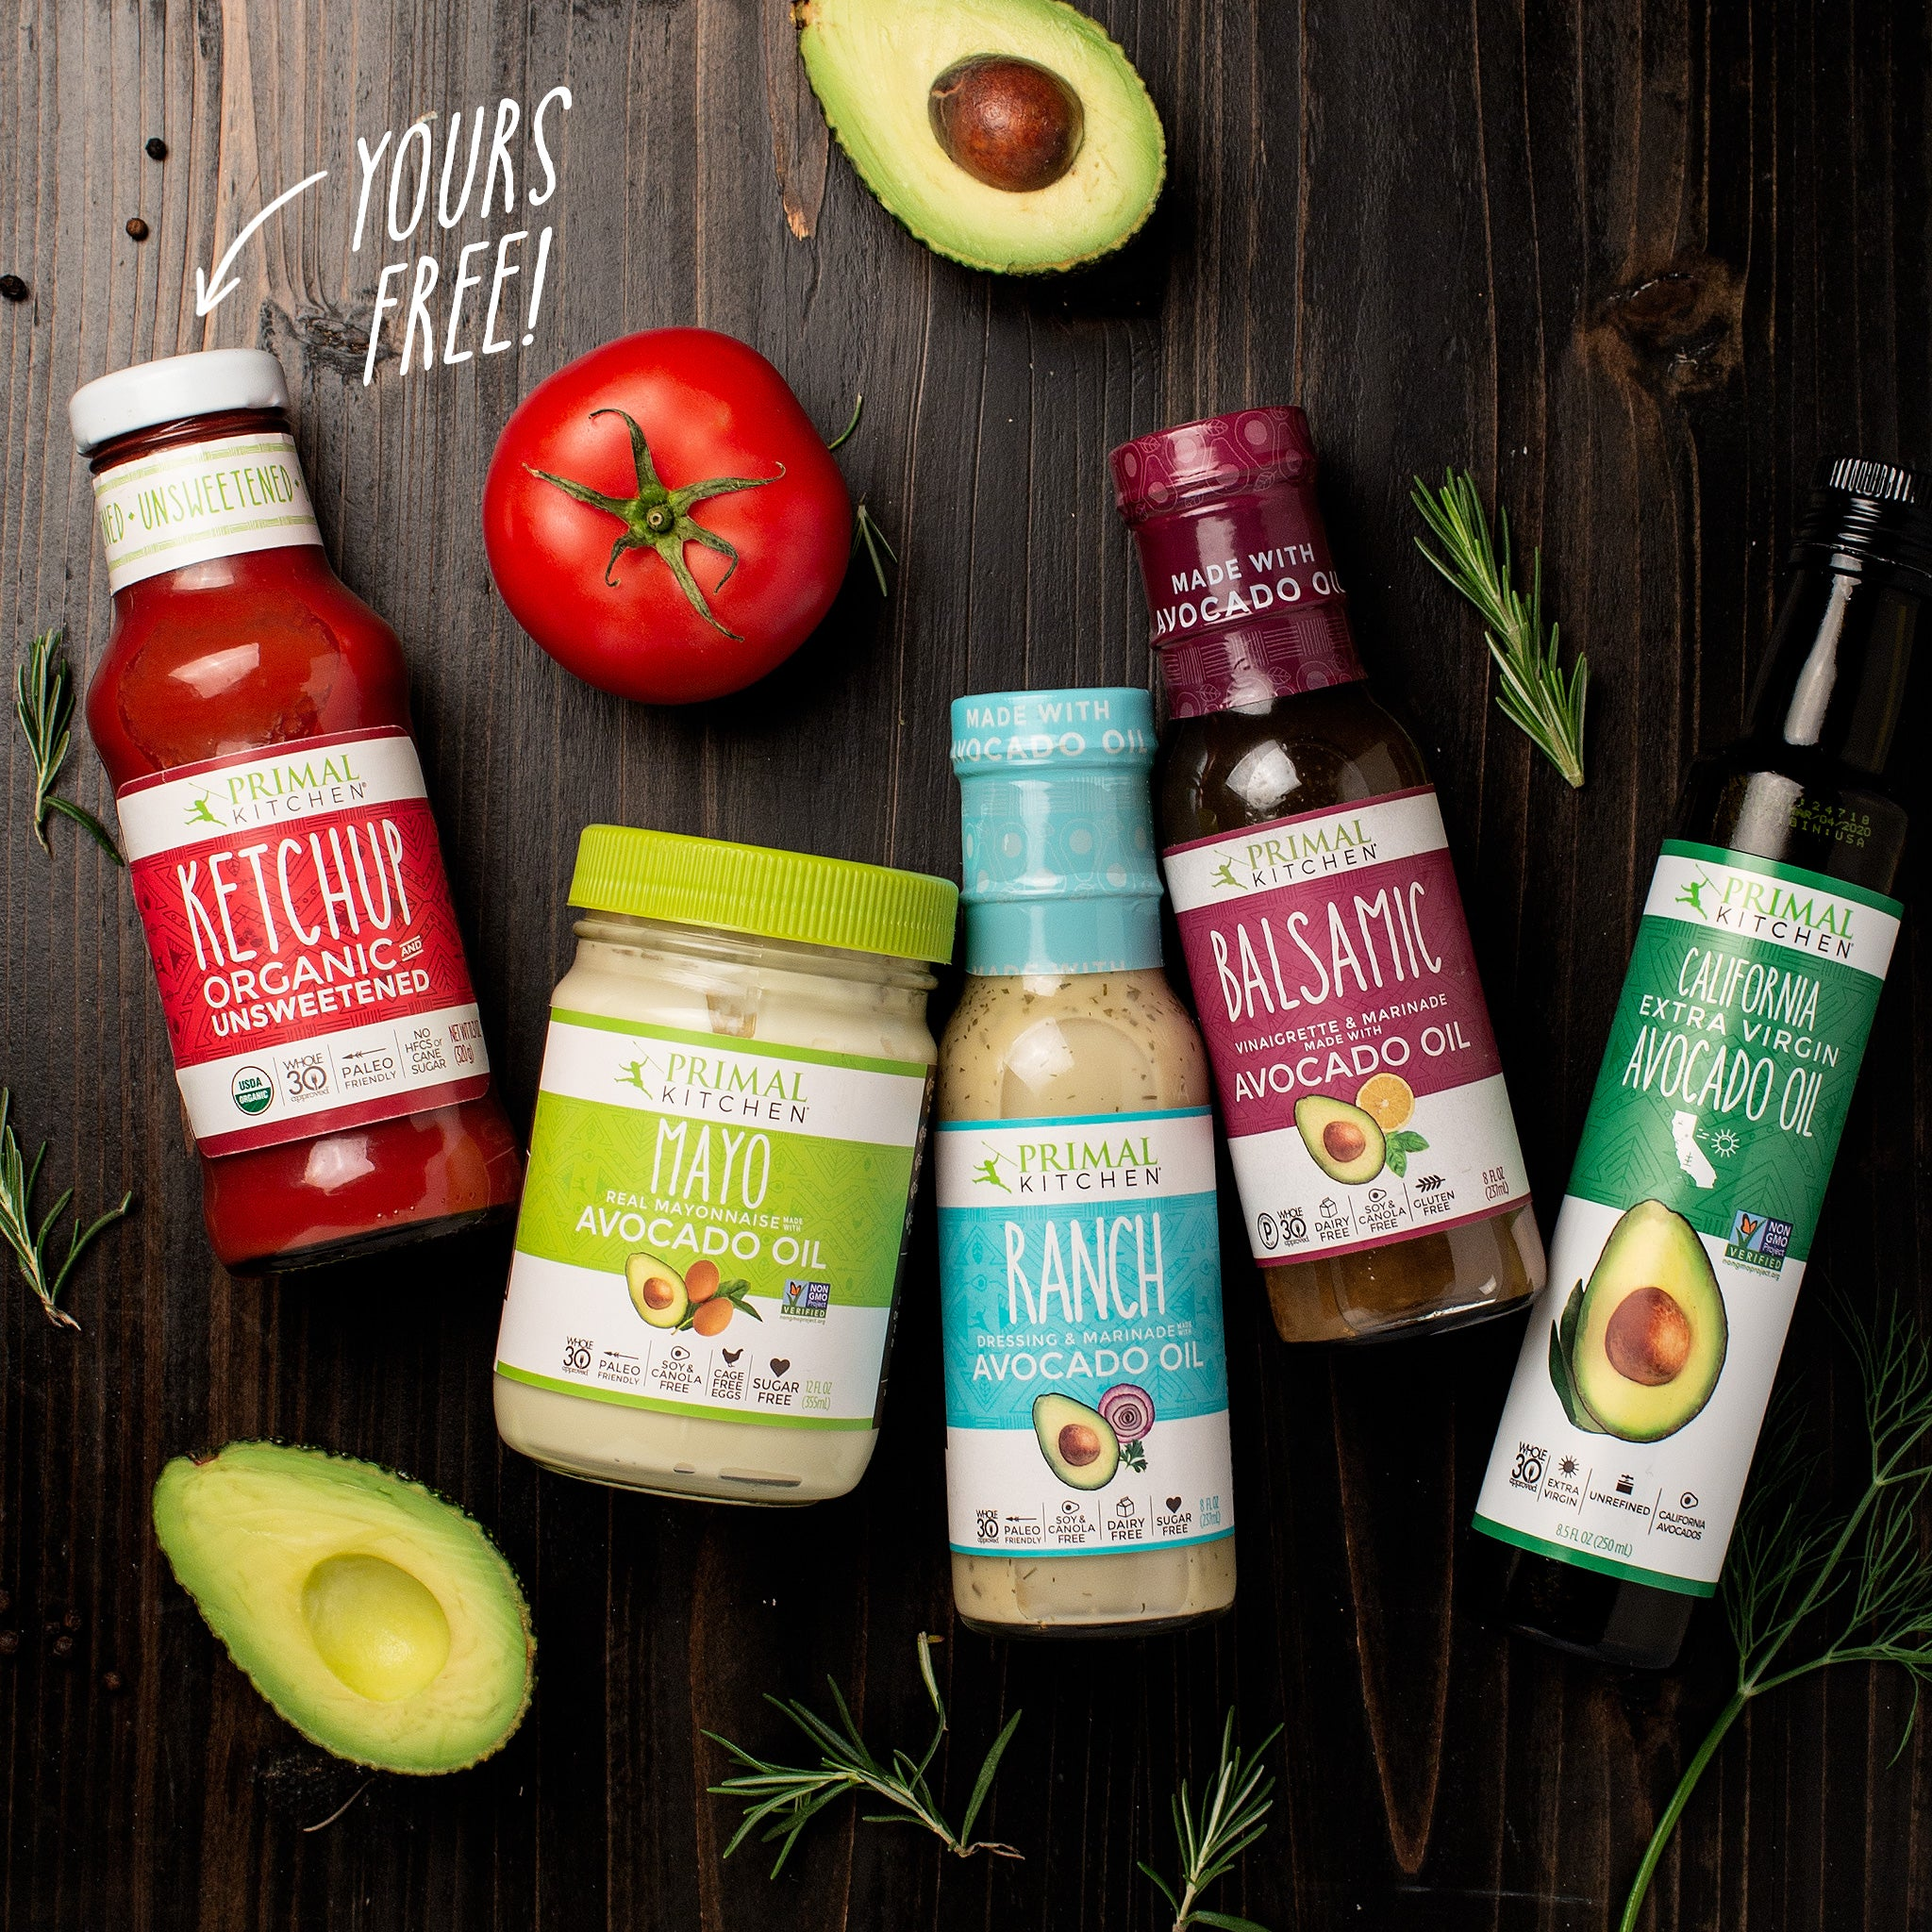 Sauces, Dressings, Toppings and Extra Virgin Avocado Oil